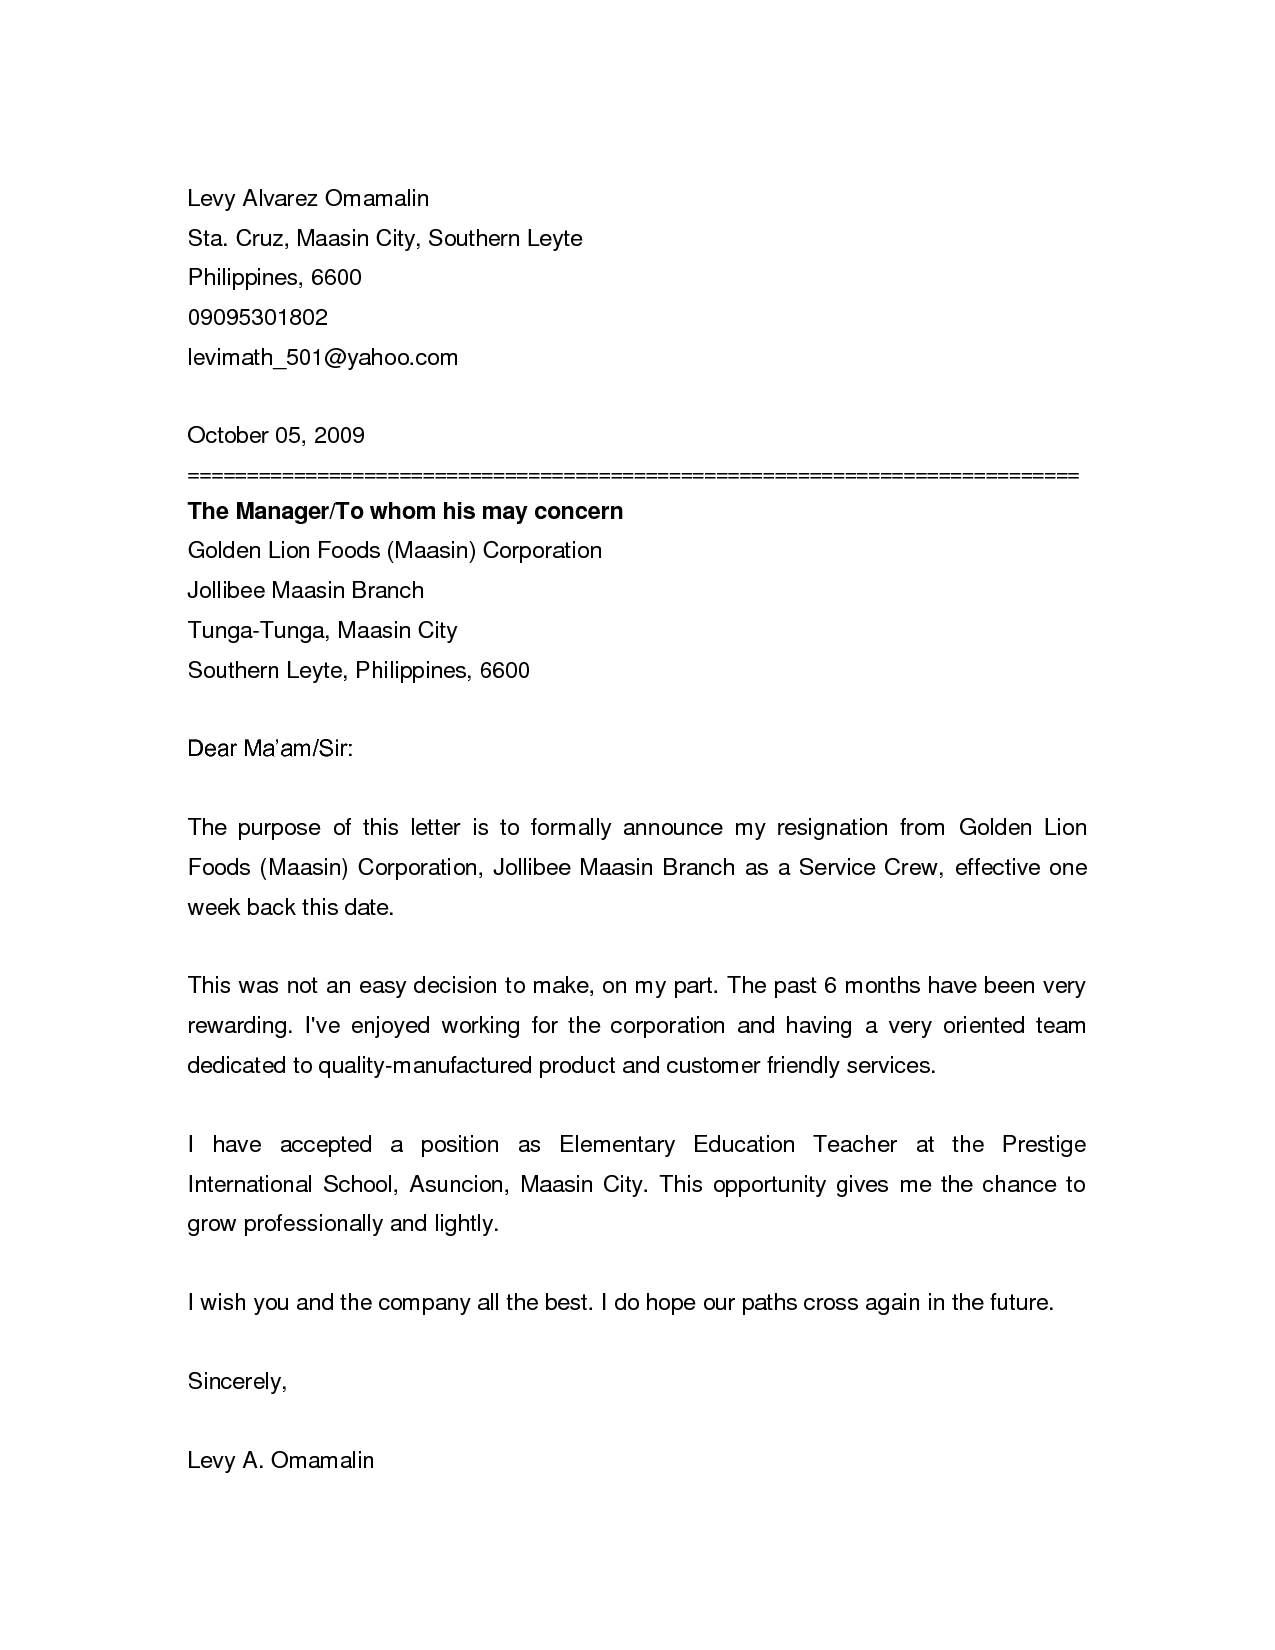 Resignation announcement letter this resignation announcement resignation announcement letter this resignation announcement letter to let co workers know that you sample altavistaventures